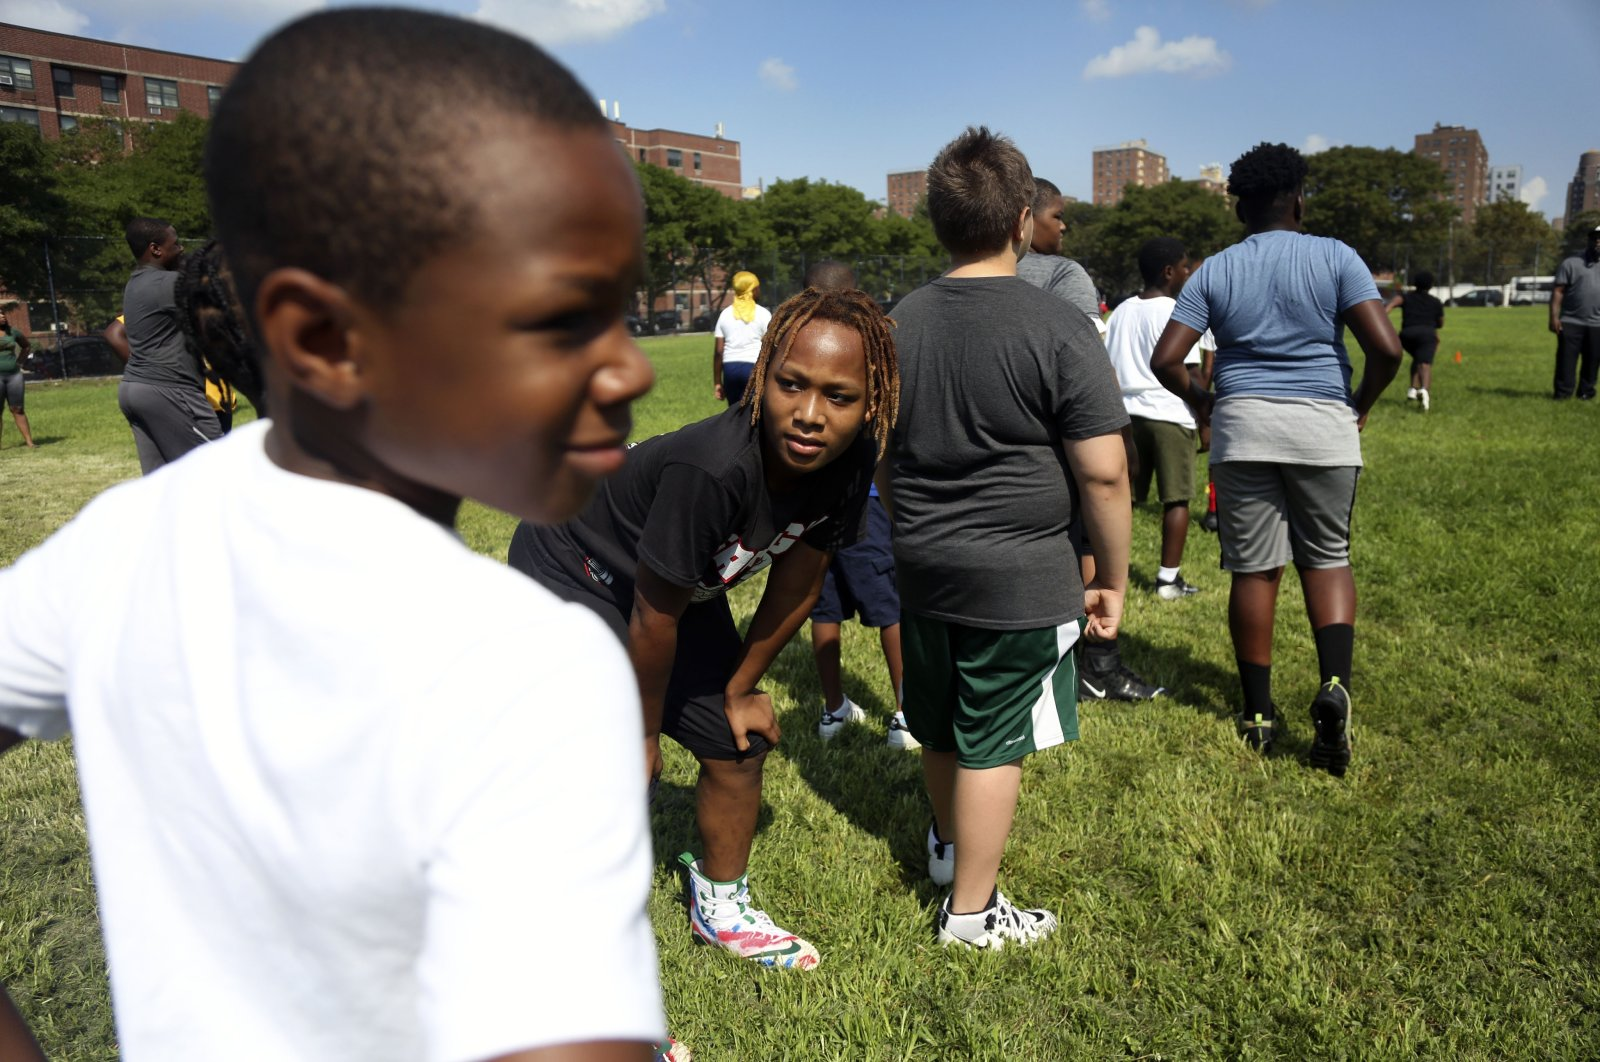 Children warm up with teammates at the first football practice of the season on Sunday, Aug. 9, 2020, in Brooklyn borough of New York. (AP Photo)